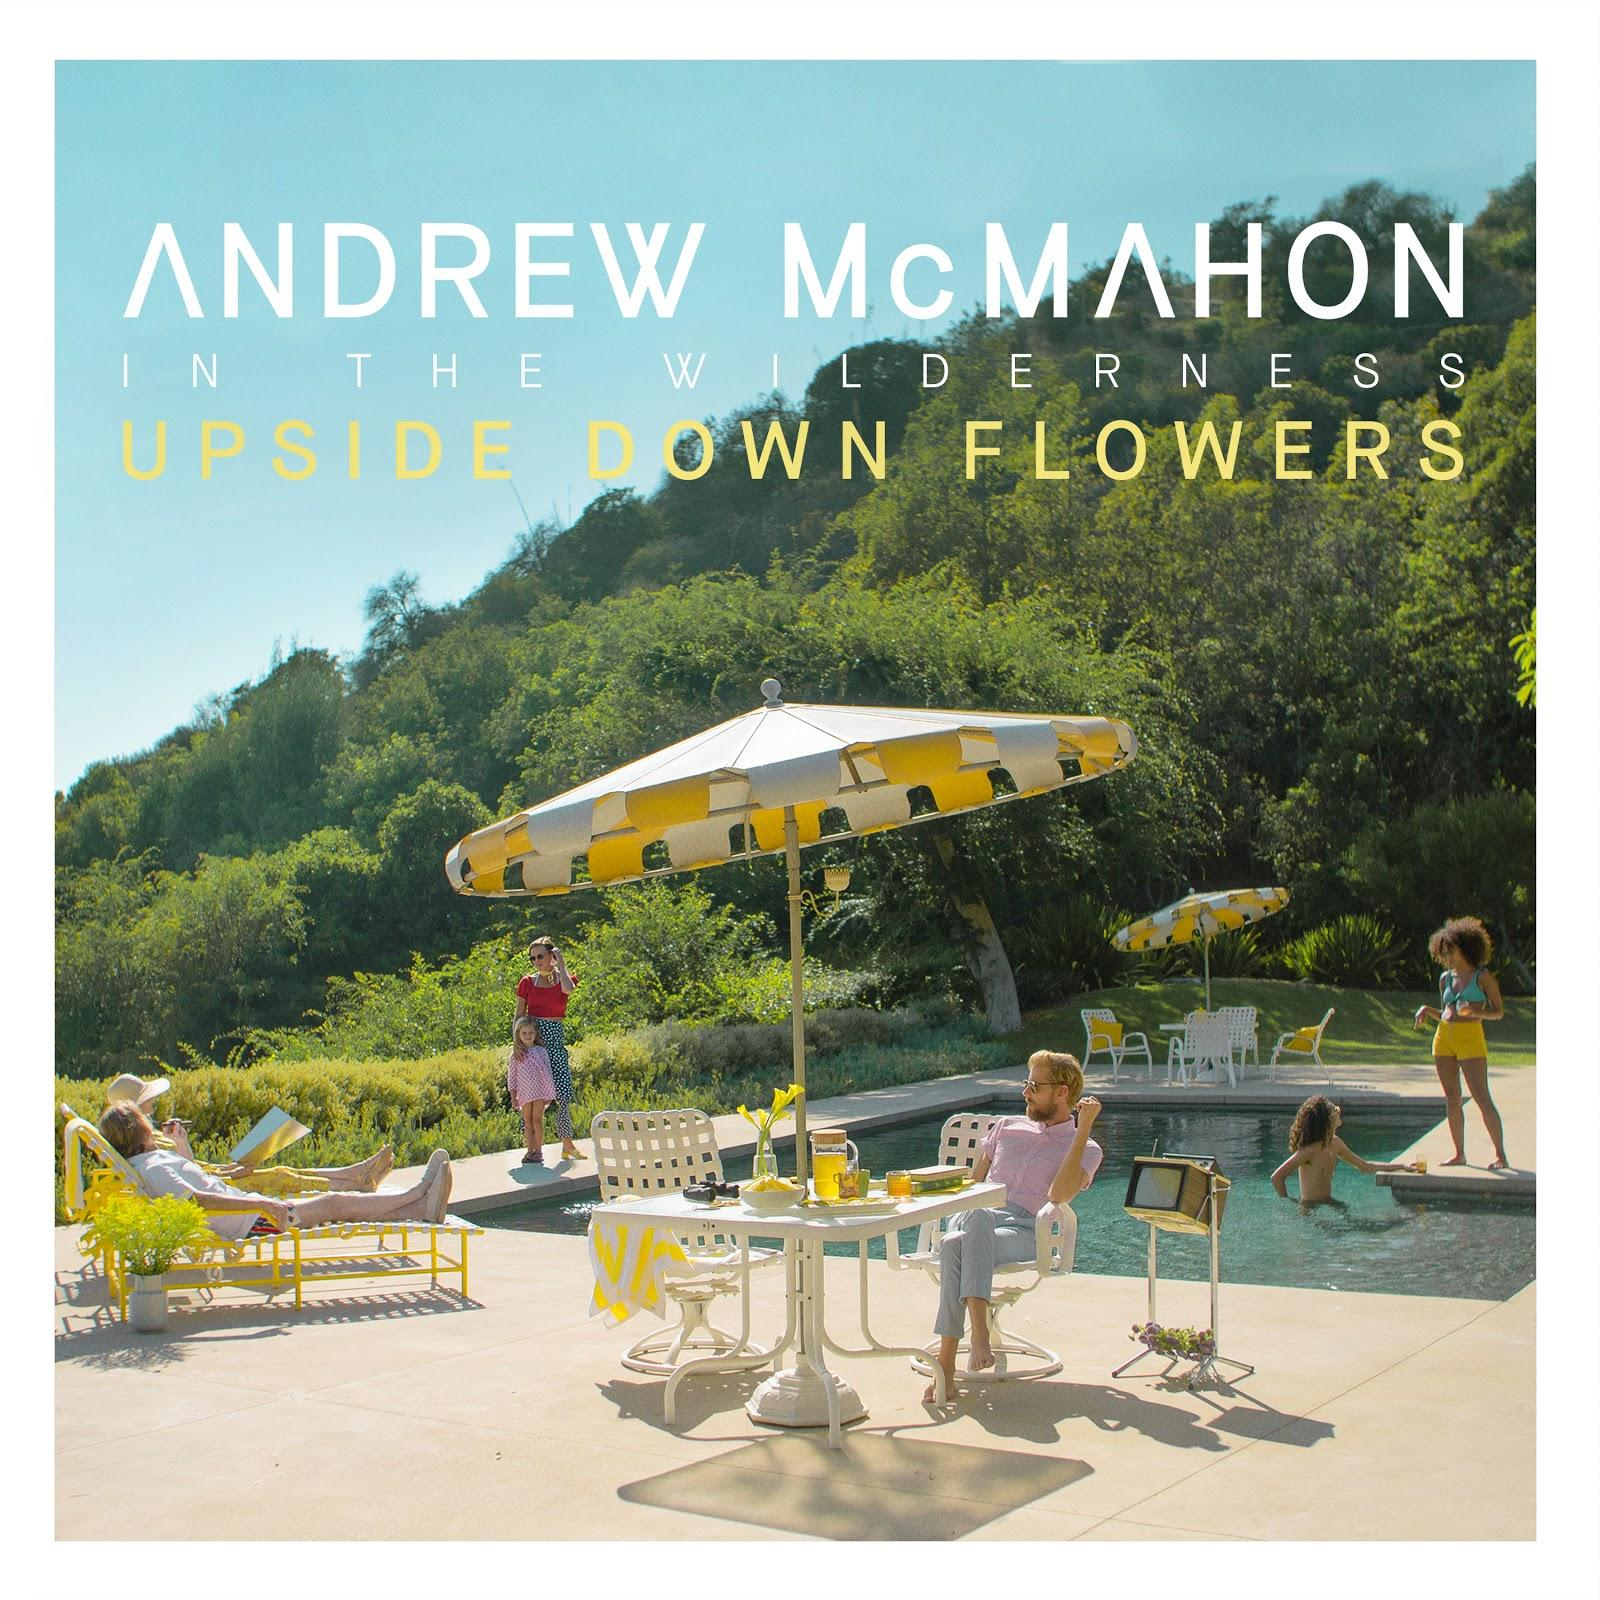 Image result for andrew mcmahon upside down flowers